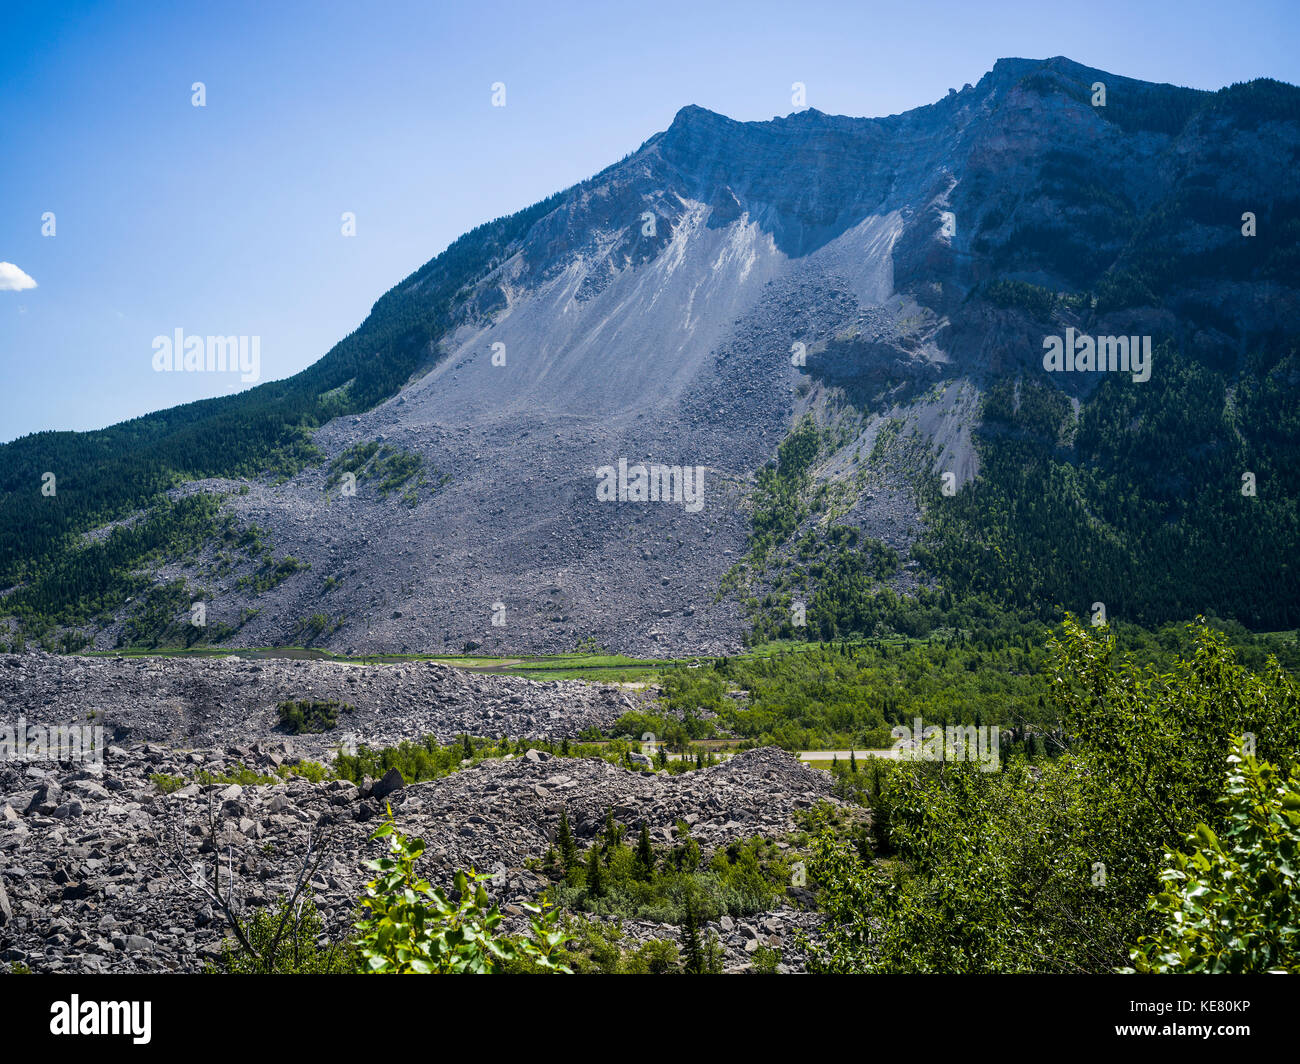 Frank Slide in the Crowsnest Pass, a massive rockslide from Turtle mountain in 1903, burying the town of Frank; - Stock Image